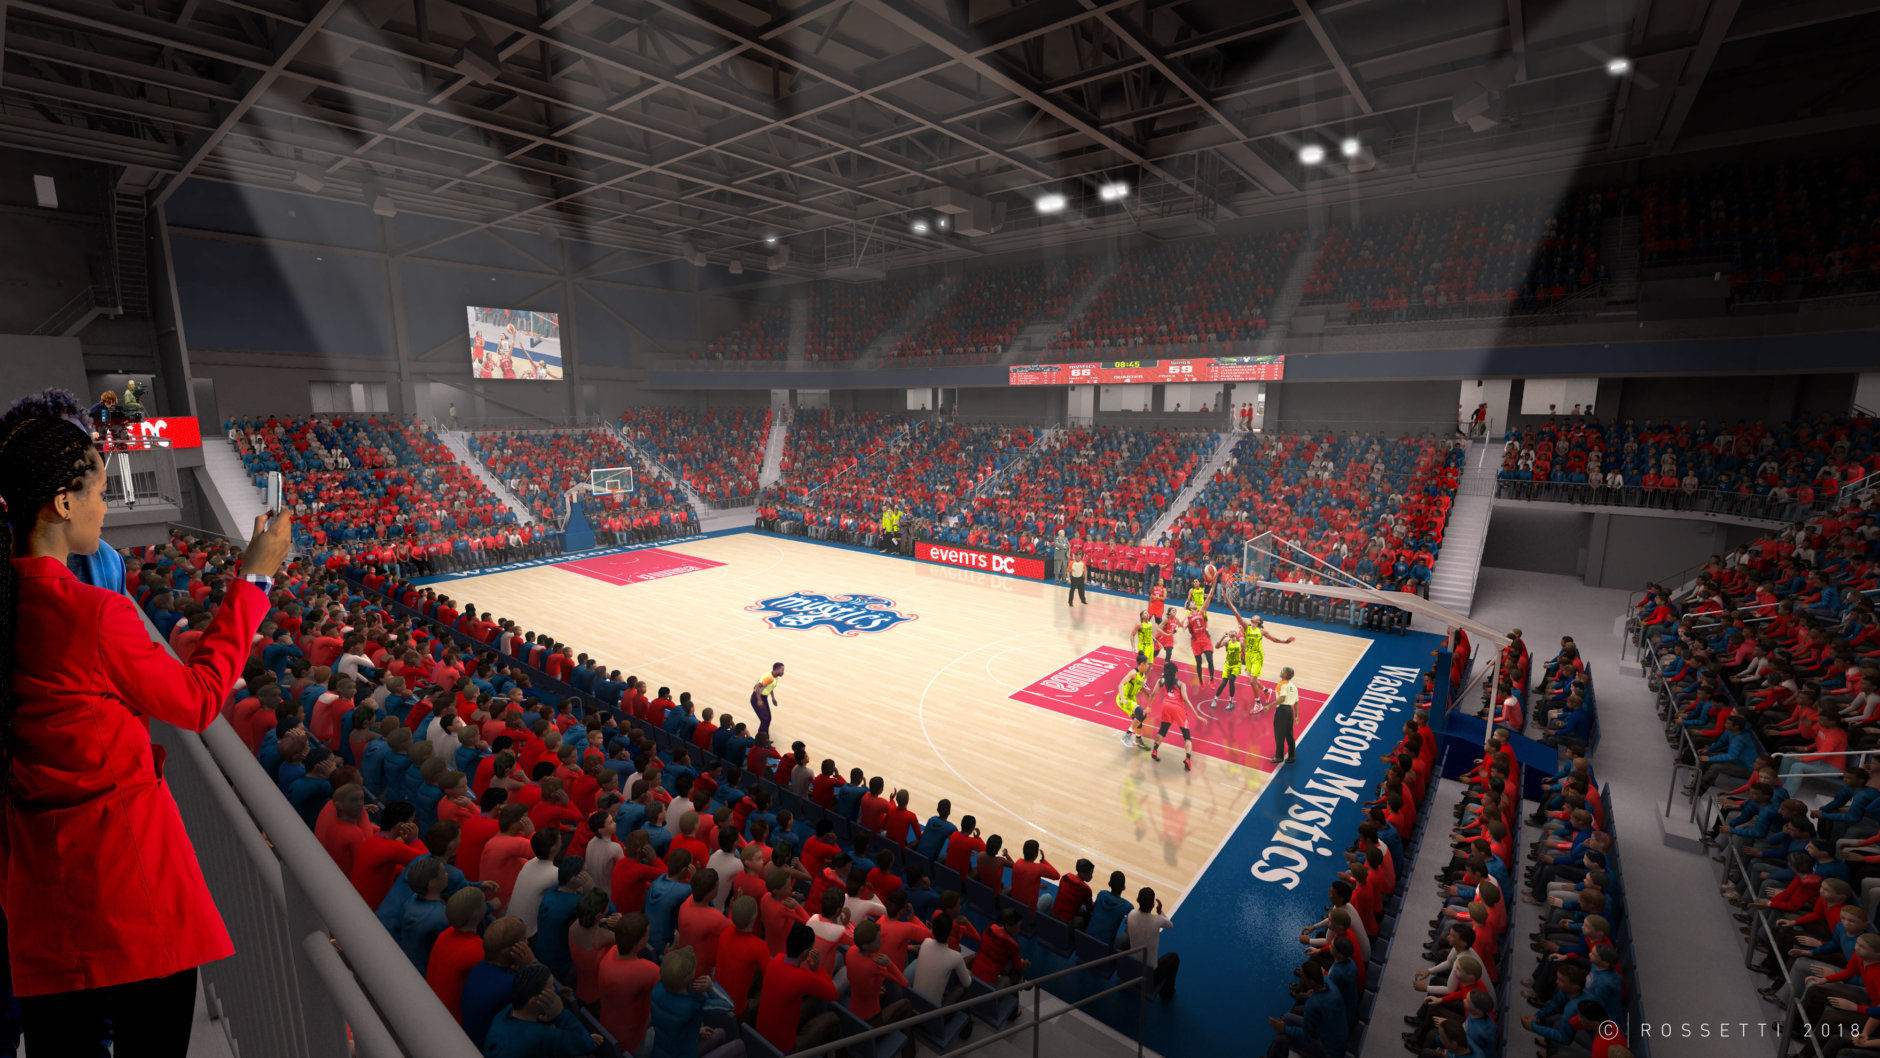 The Entertainment and Sports Arena is a 4,200 seat, 120,000-square-foot area that is home to the Washington Mystics and the new NBA-G League team, the Capital City Go-Go. (Courtesy of Events DC)